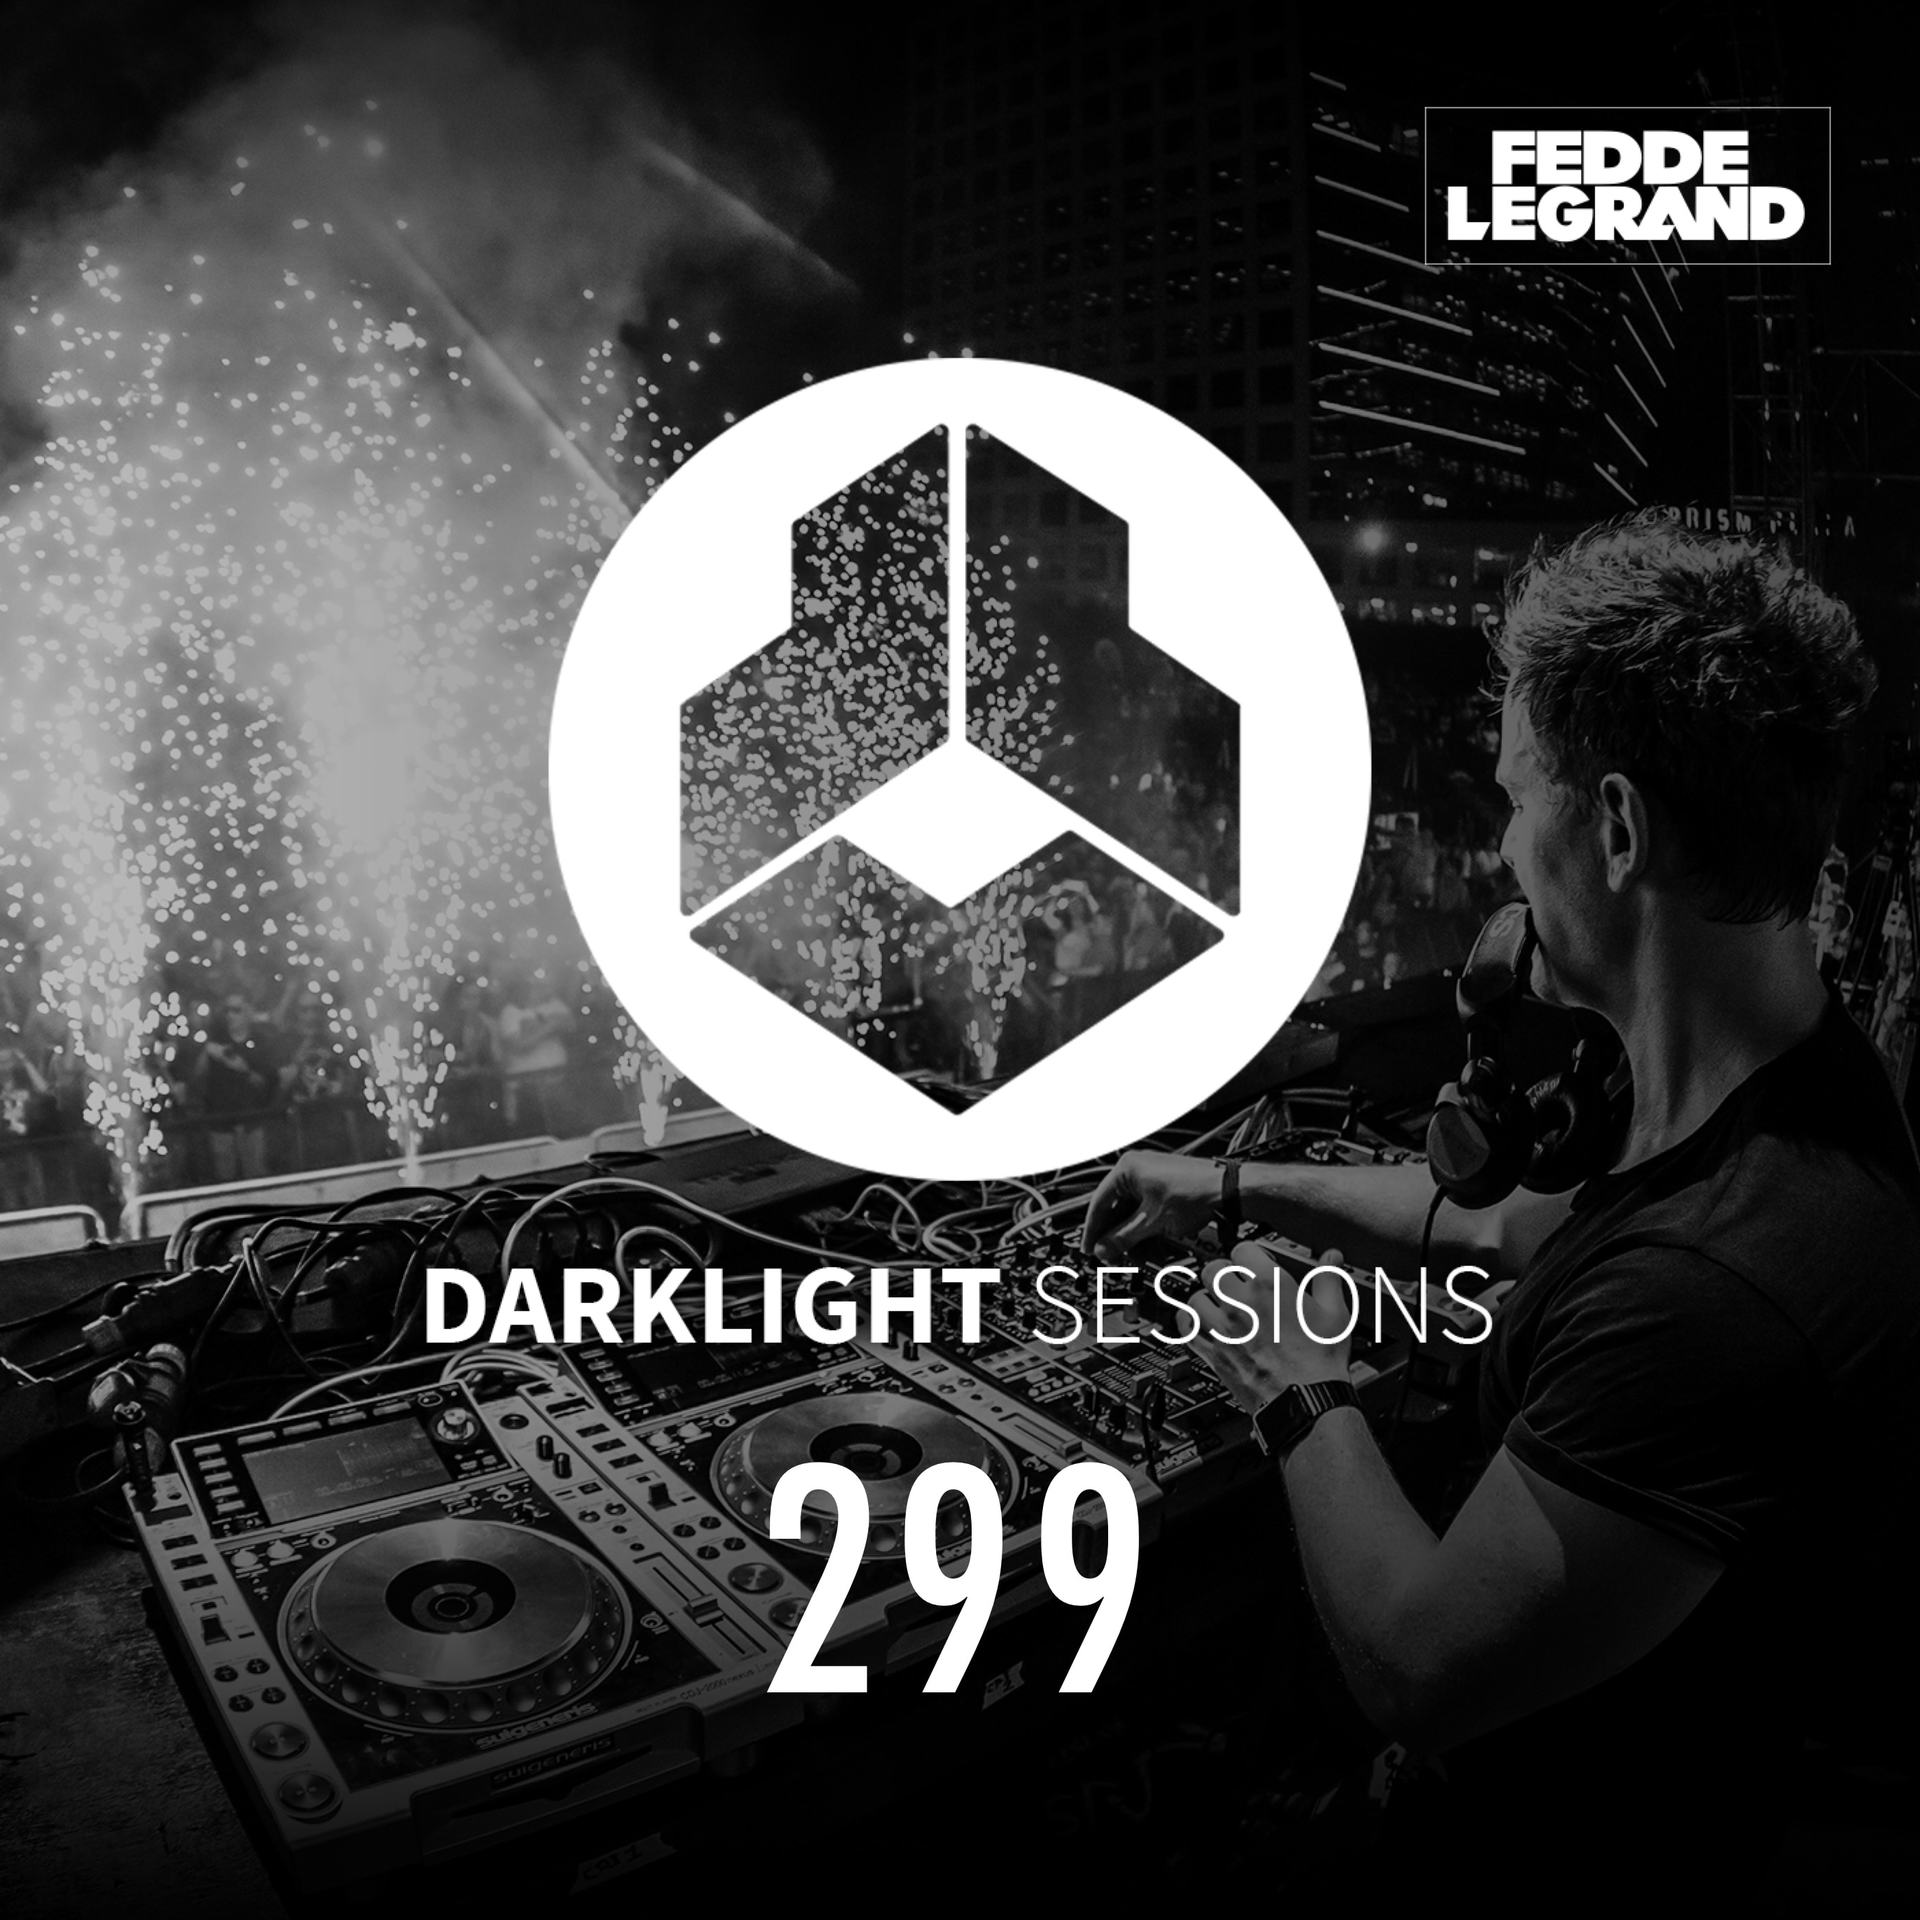 Darklight Sessions 299